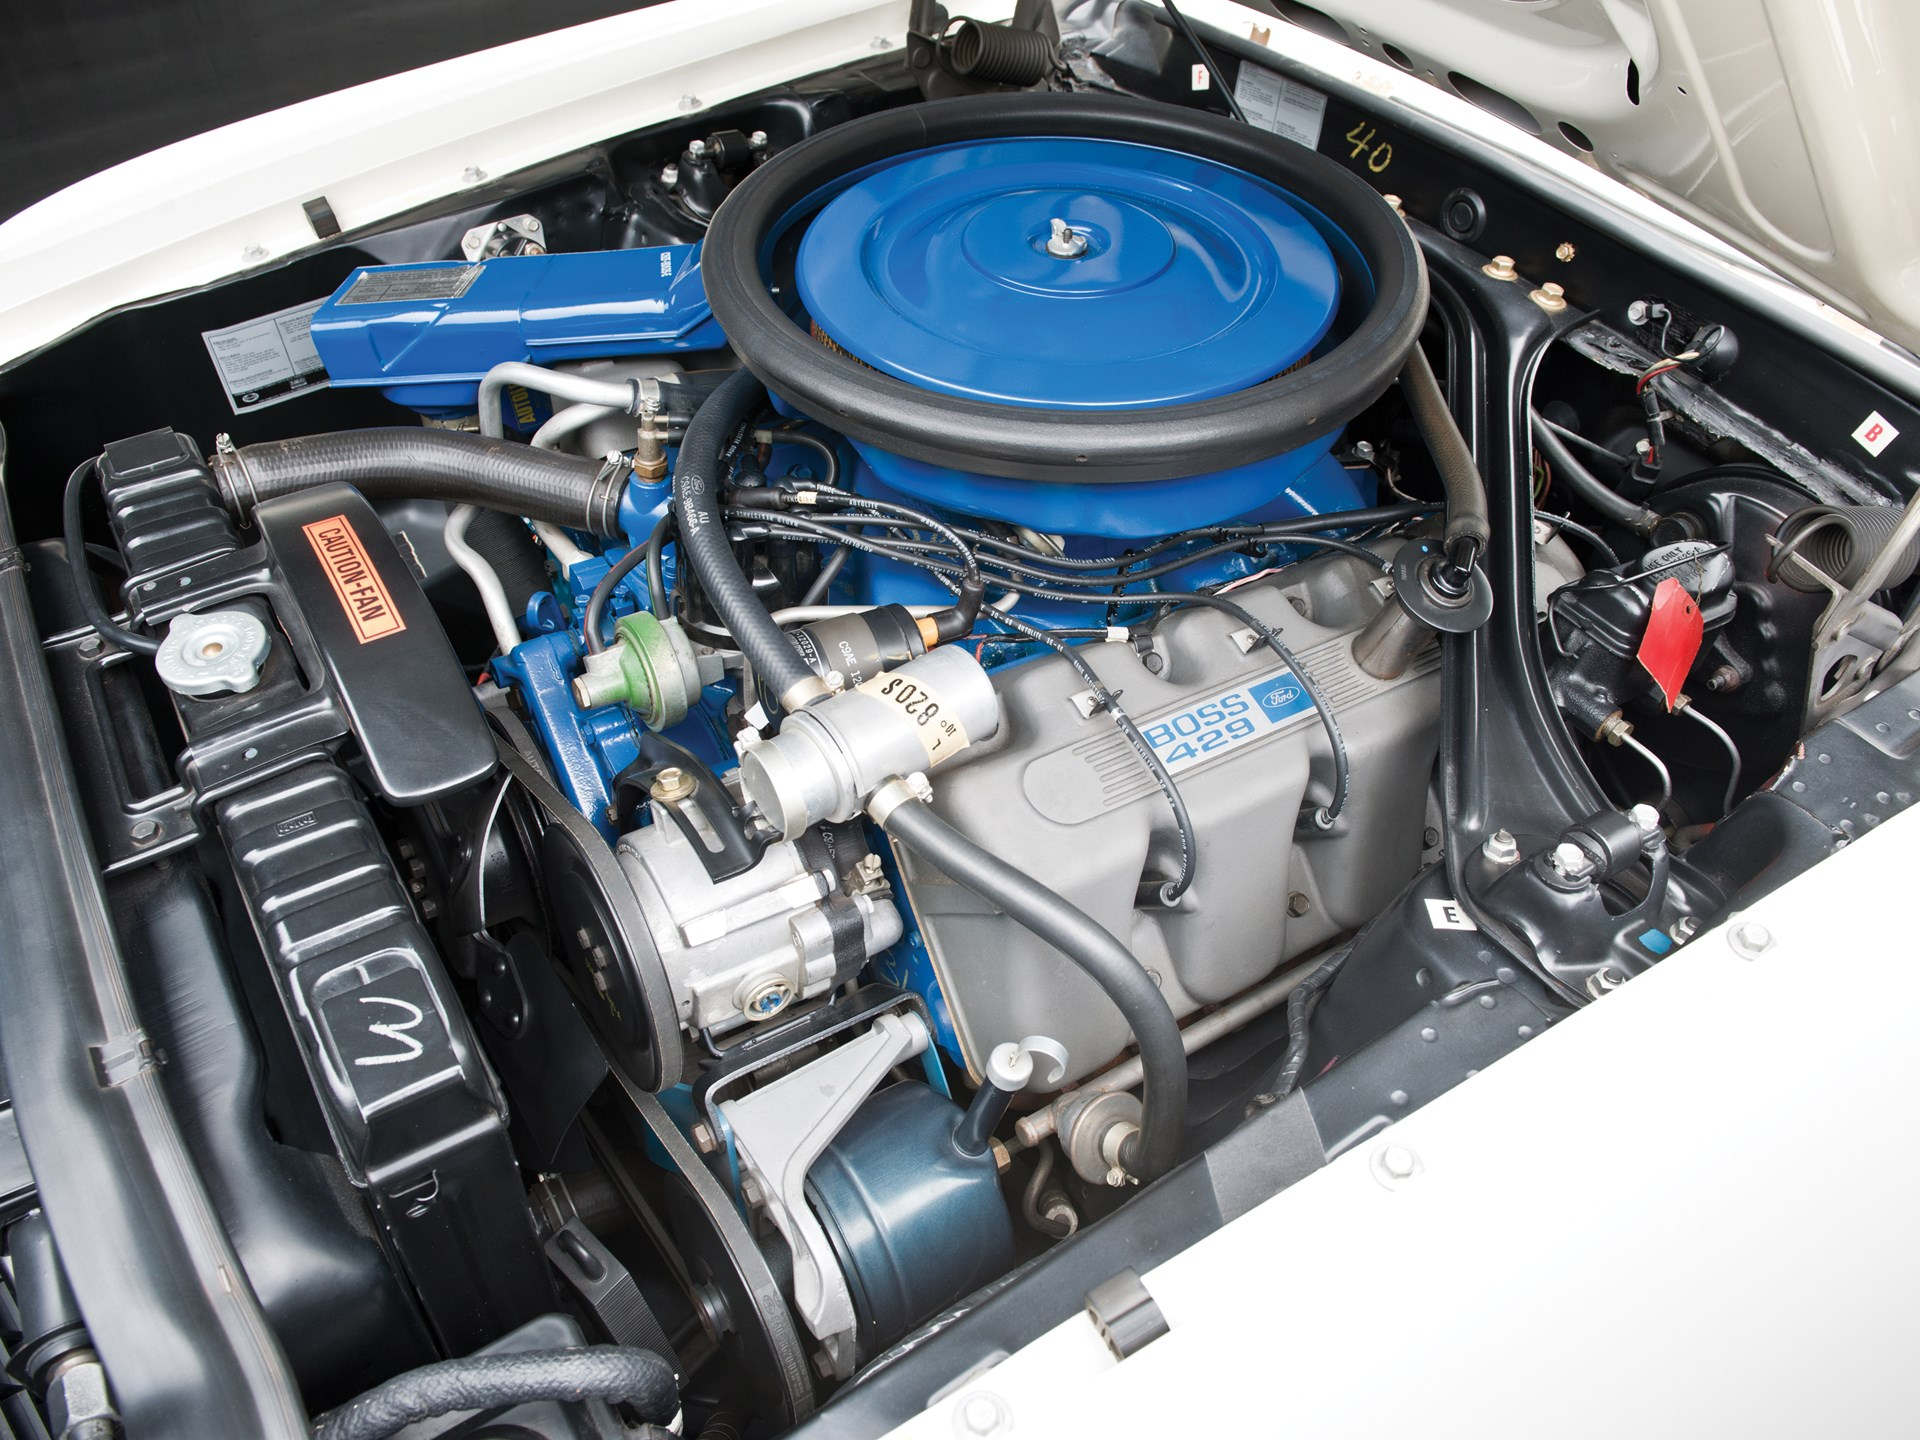 RM Sotheby's - 1969 Ford Mustang Boss 429 | The Don Davis Collection